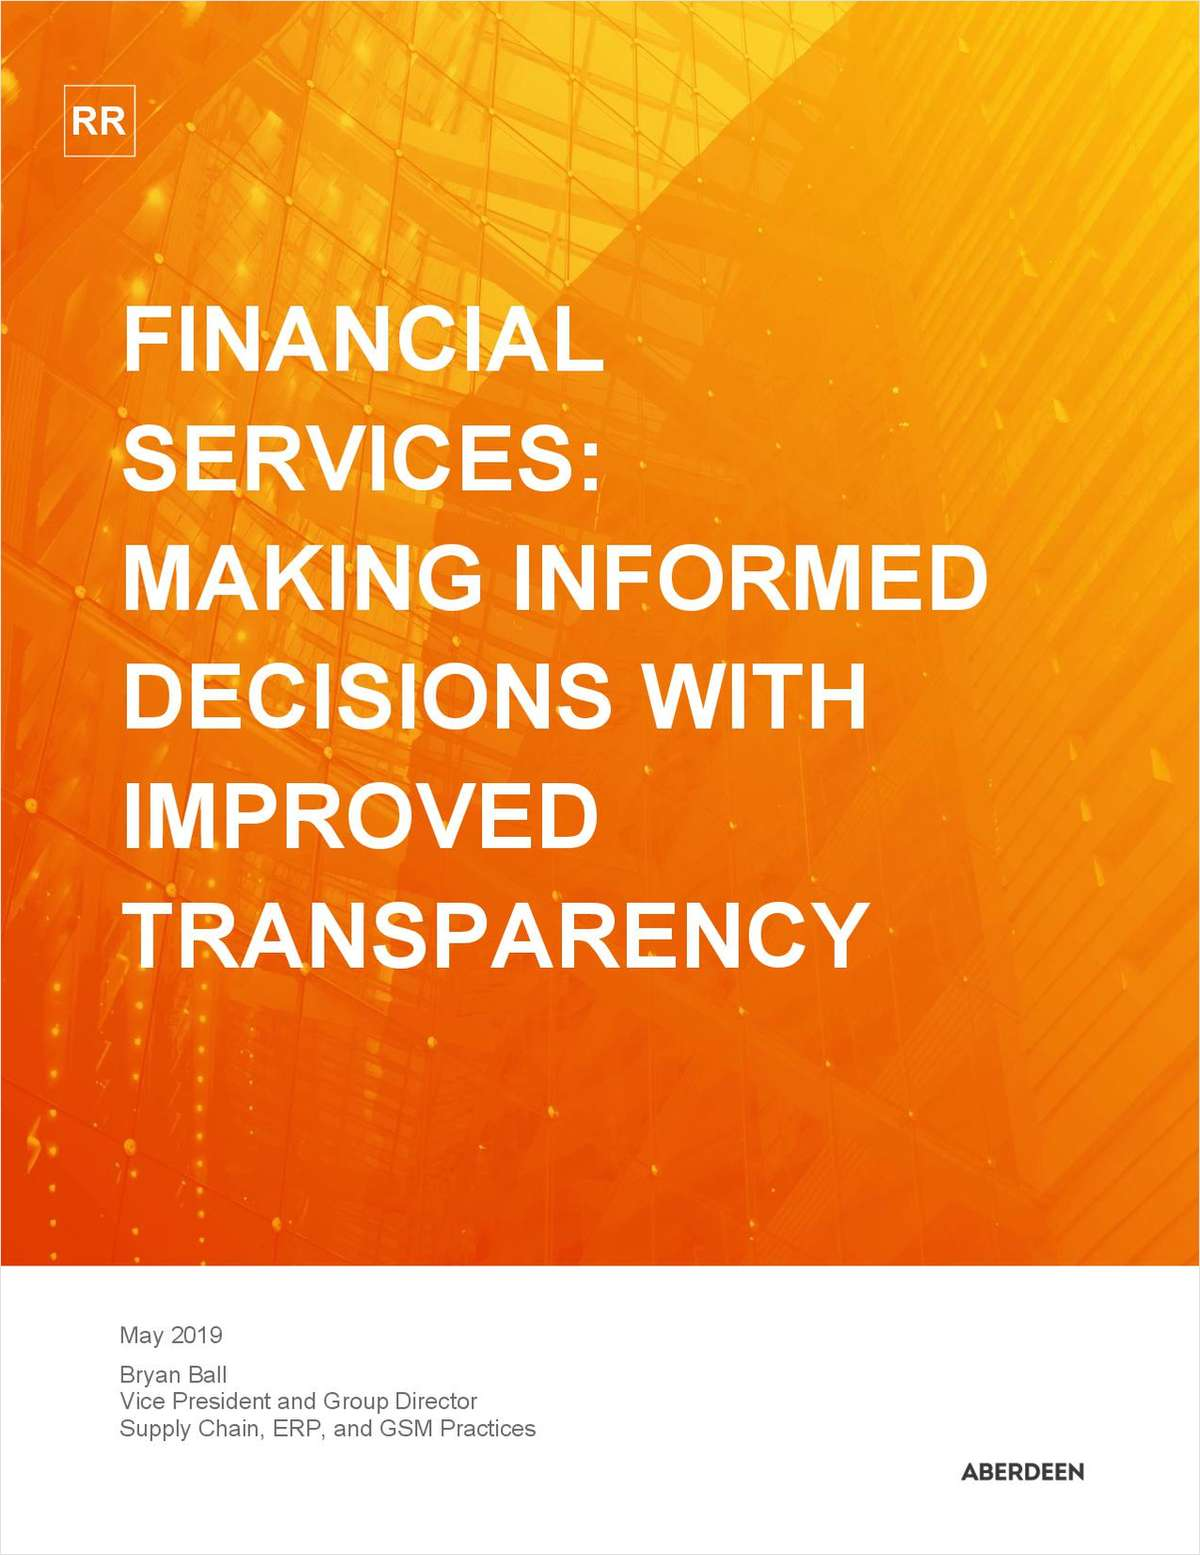 Help Clients Make Informed Decisions with Improved Transparency